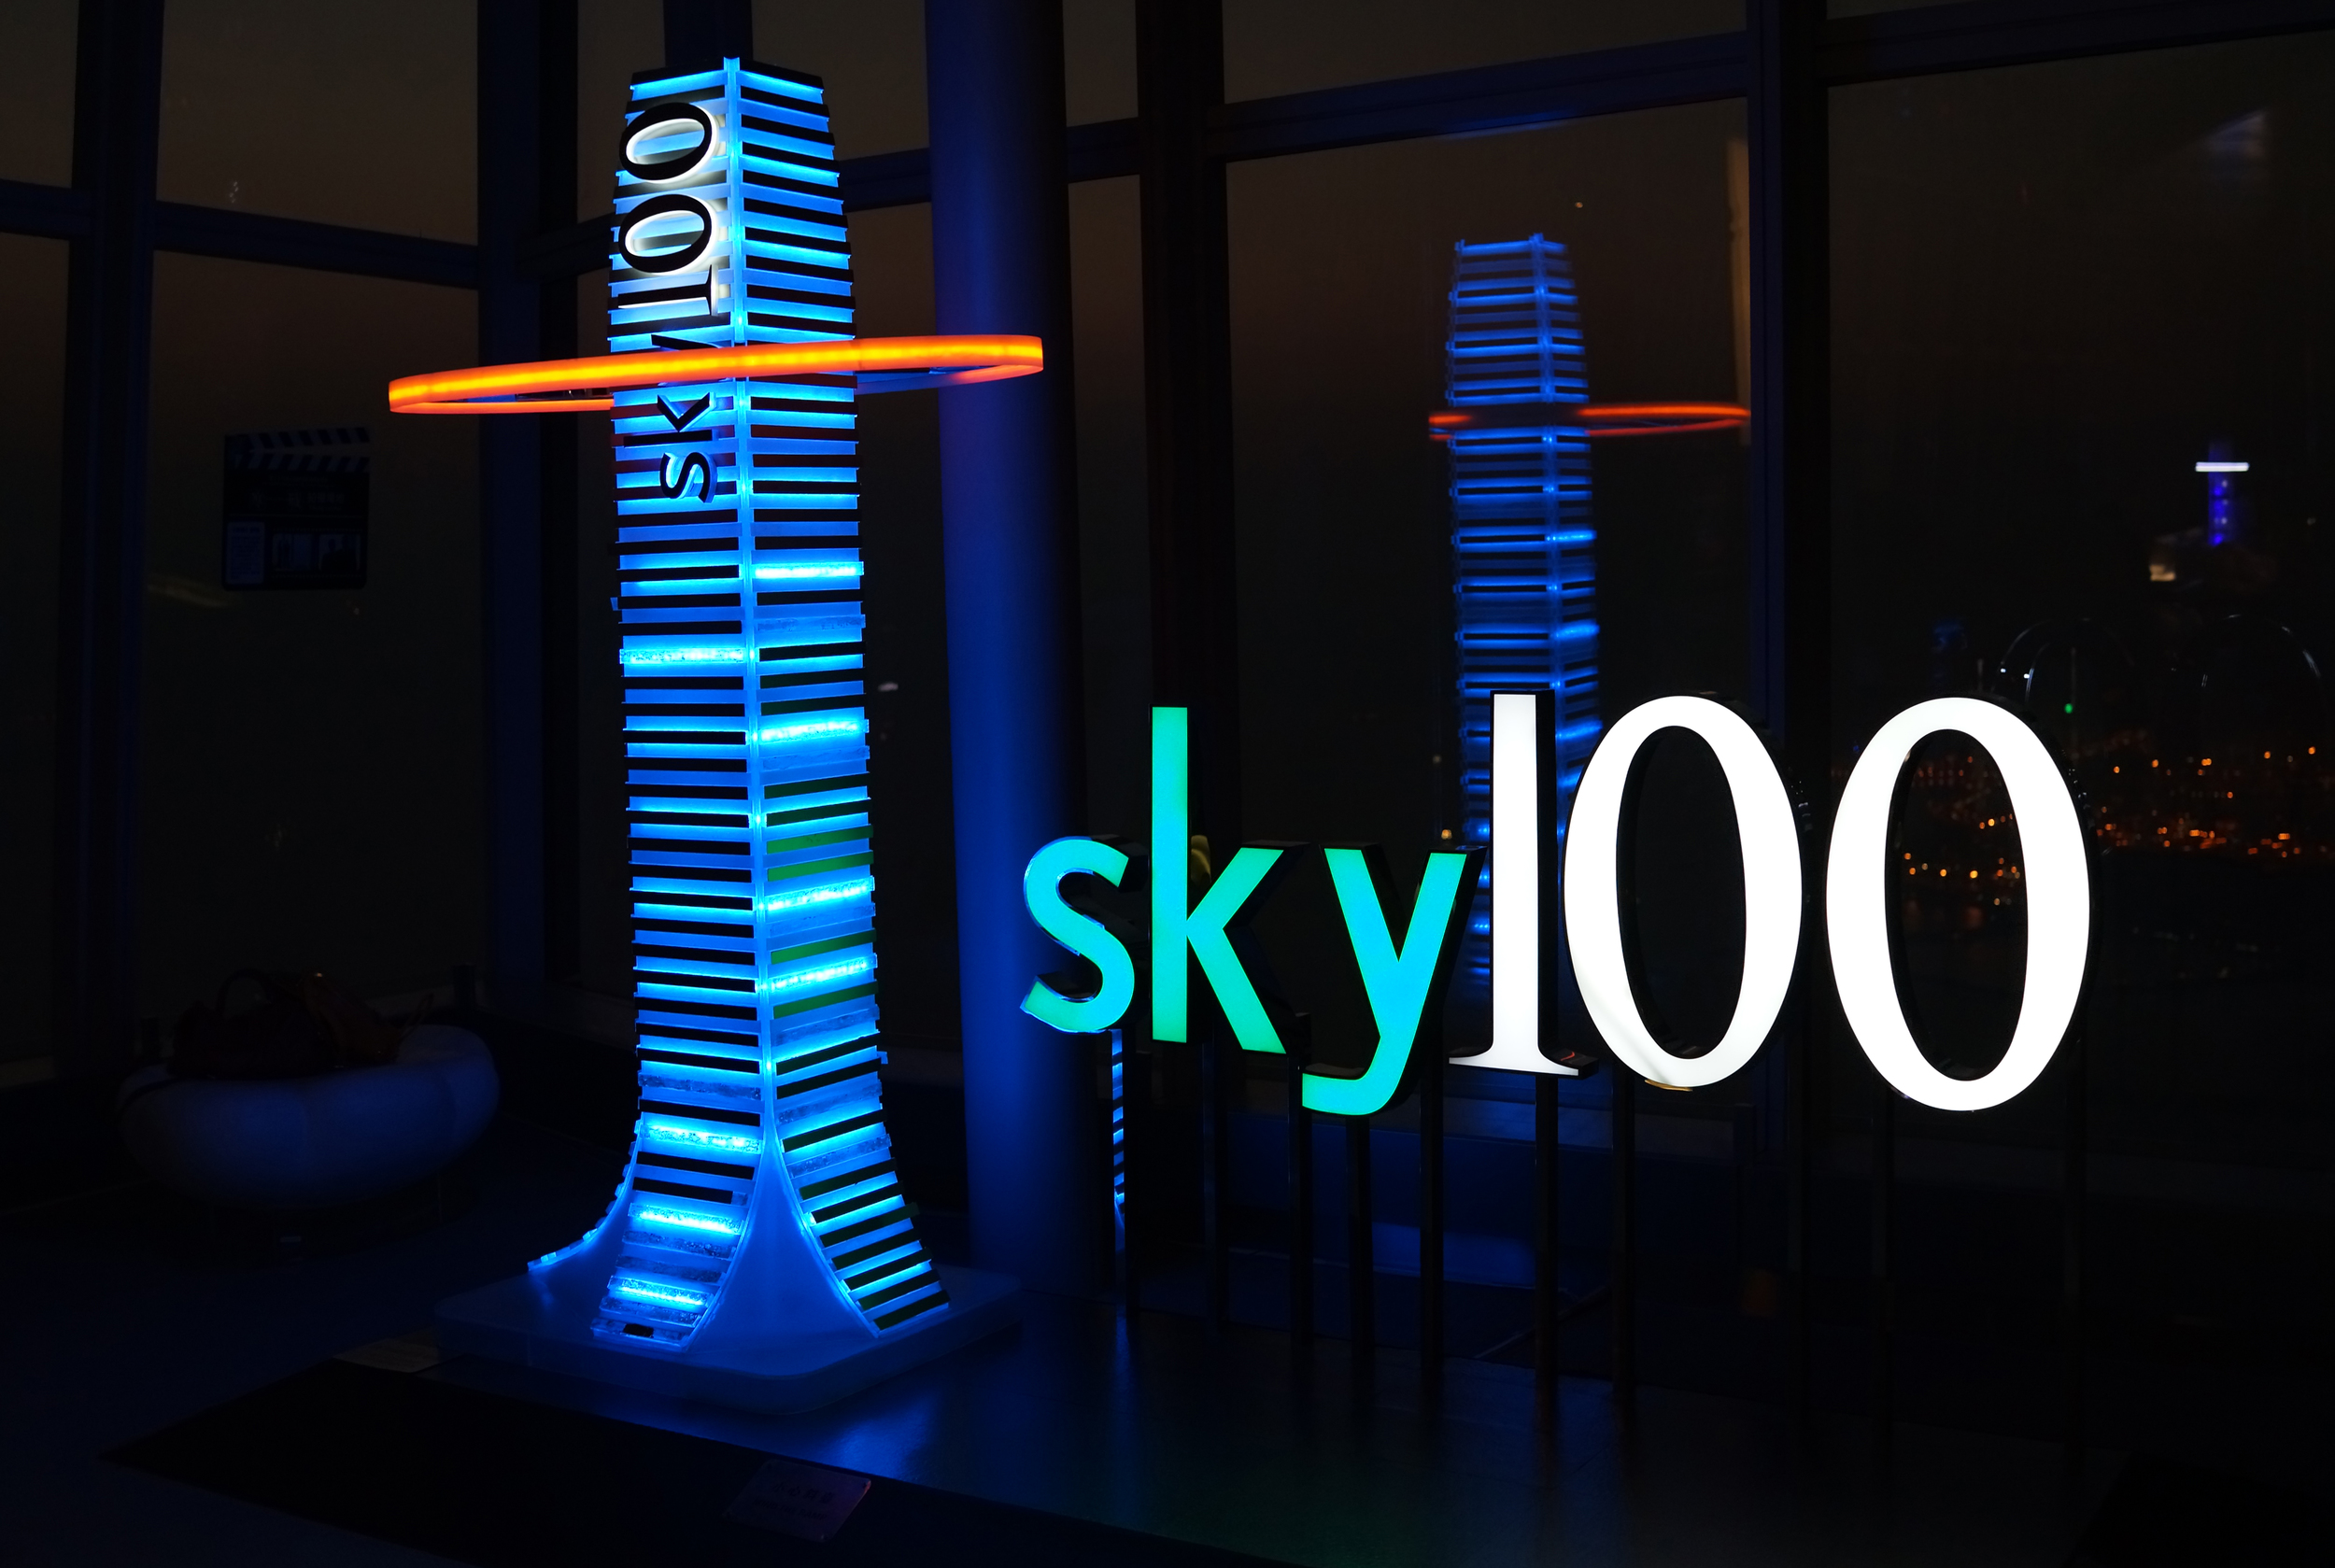 """I finally got to visit Sky 100 on the 100th Floor of the ICC Building 